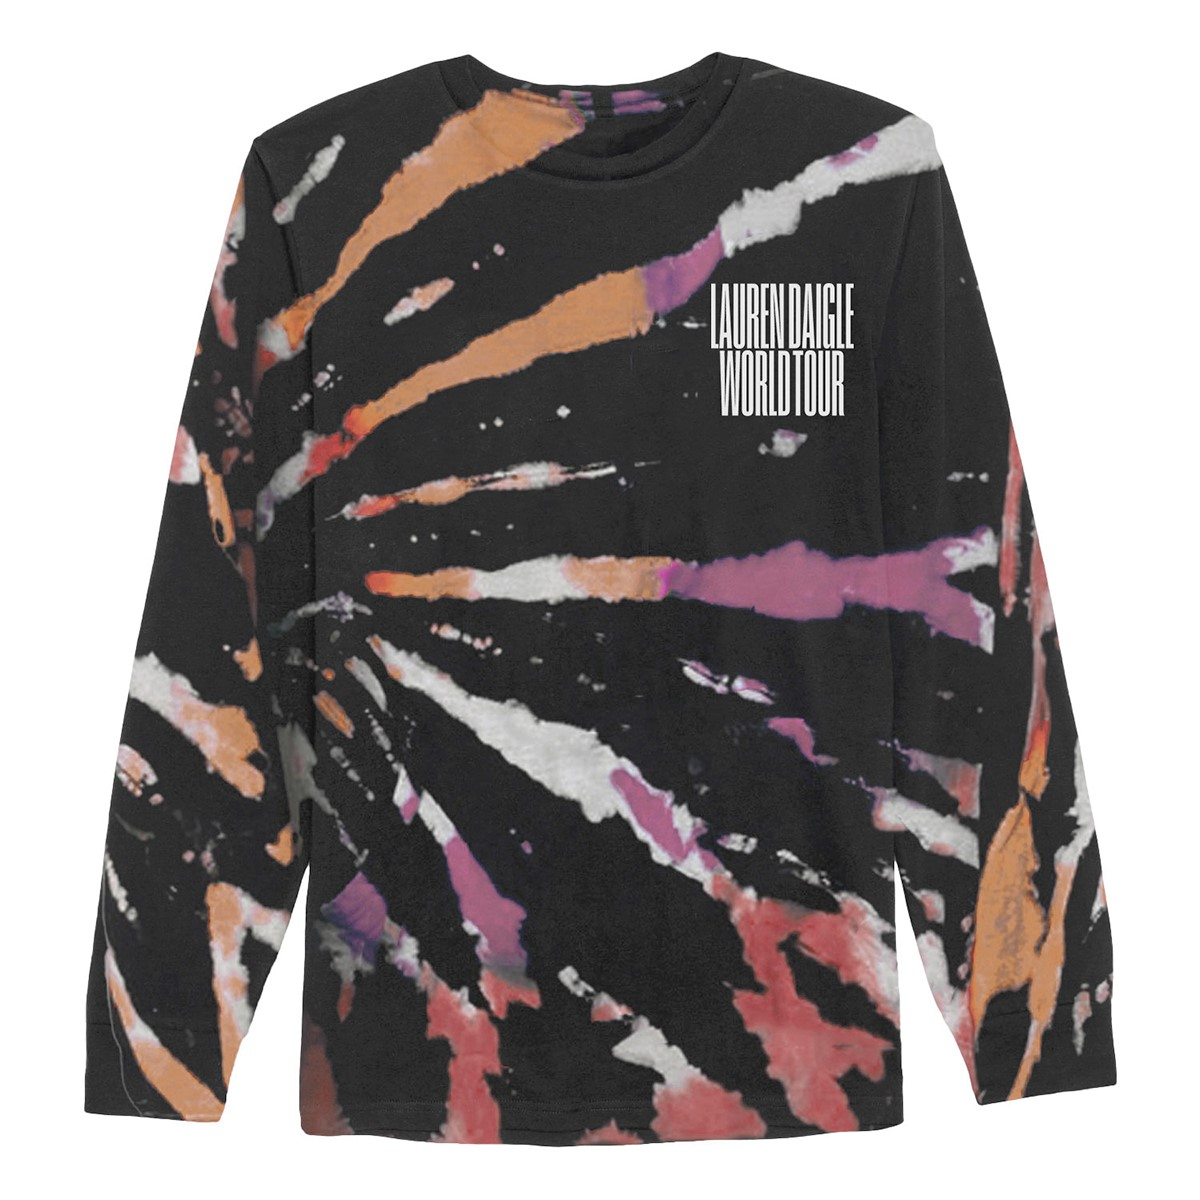 World Tour Black Tie Dye Long Sleeve T-shirt